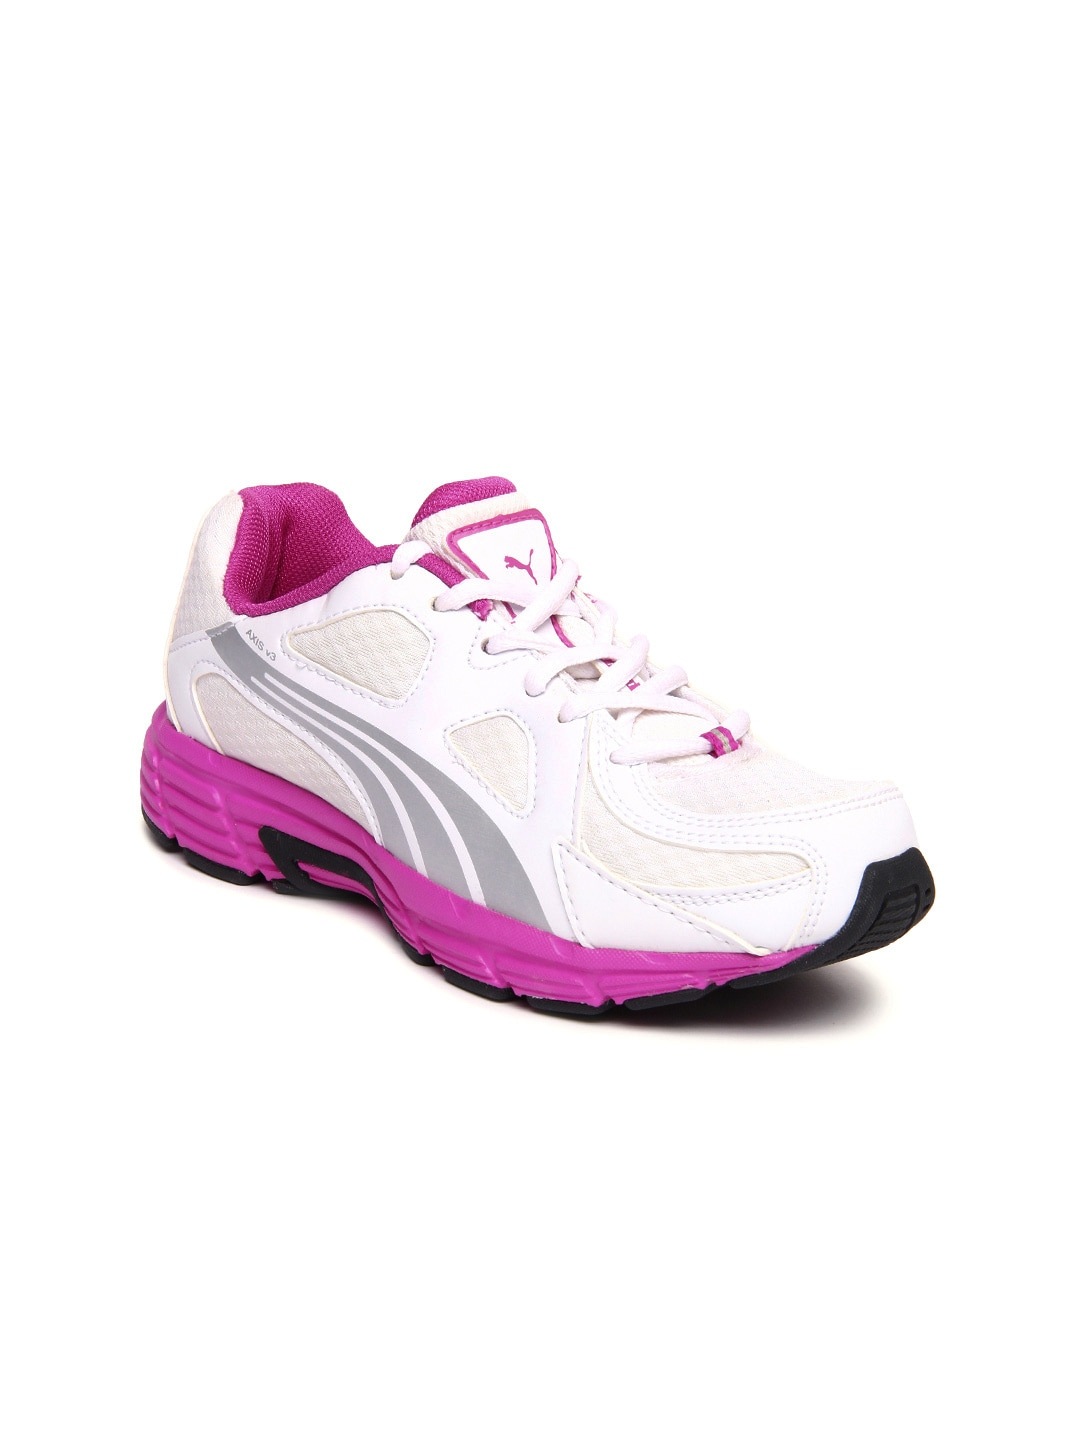 Puma 18763902 Women White Axis V3 Ind Sports Shoes - Best Price ... 36d4f9b514